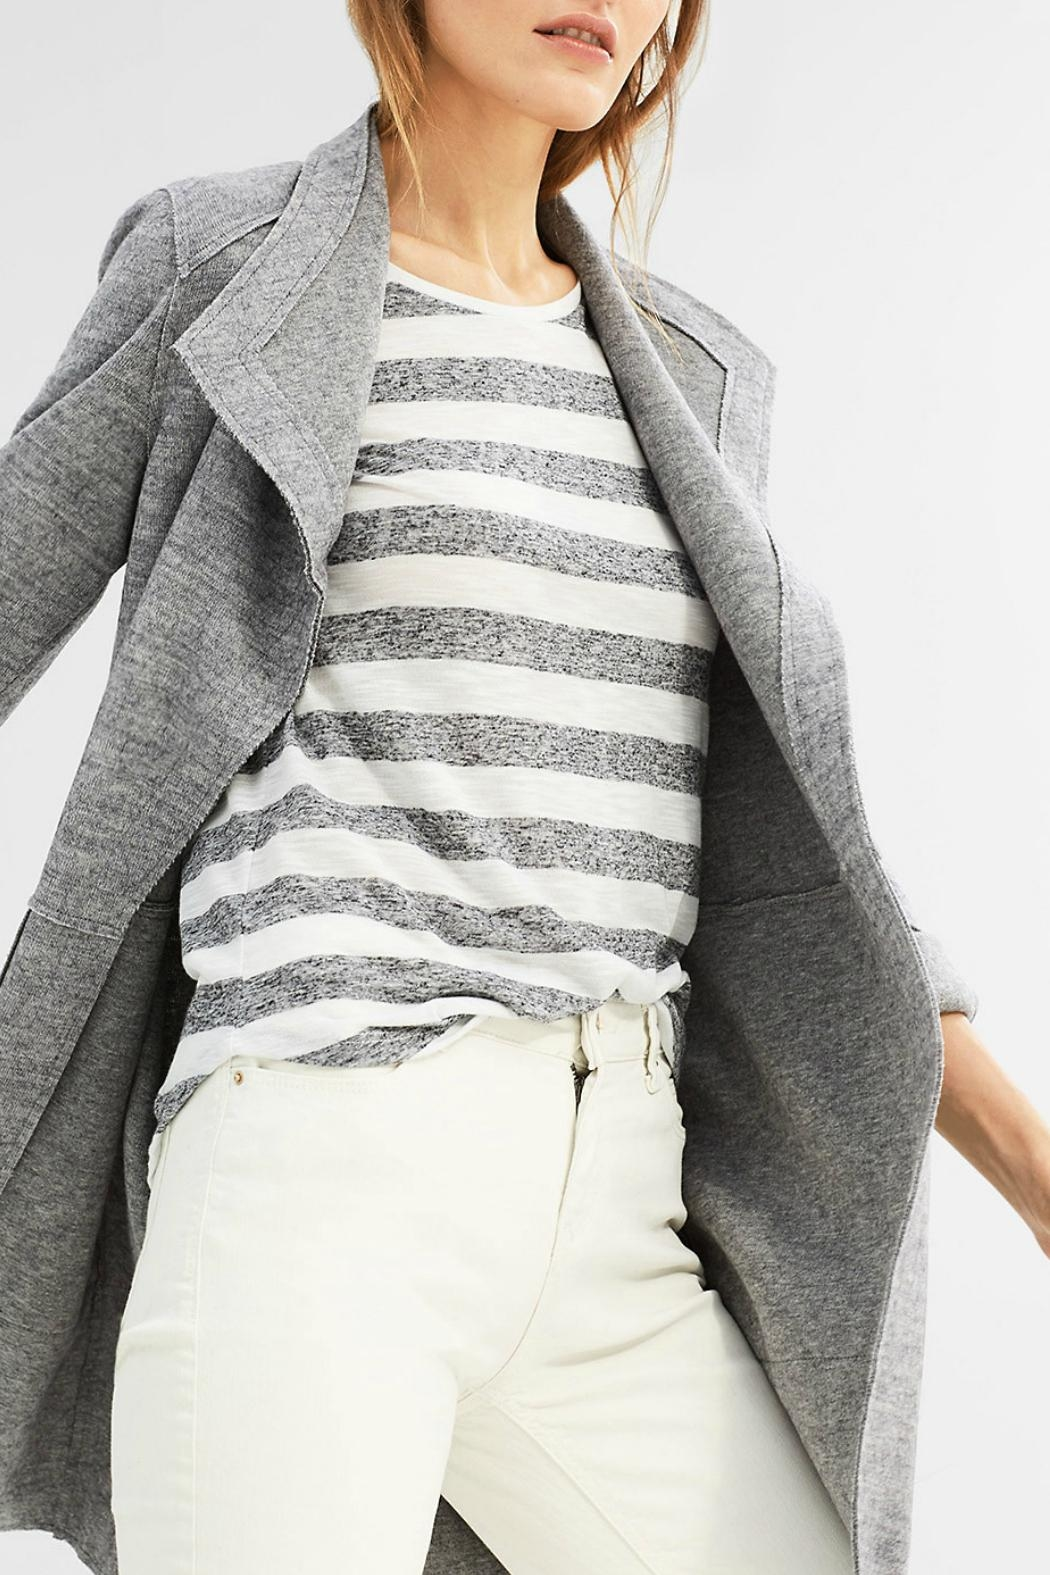 Esprit Striped Tee - Back Cropped Image